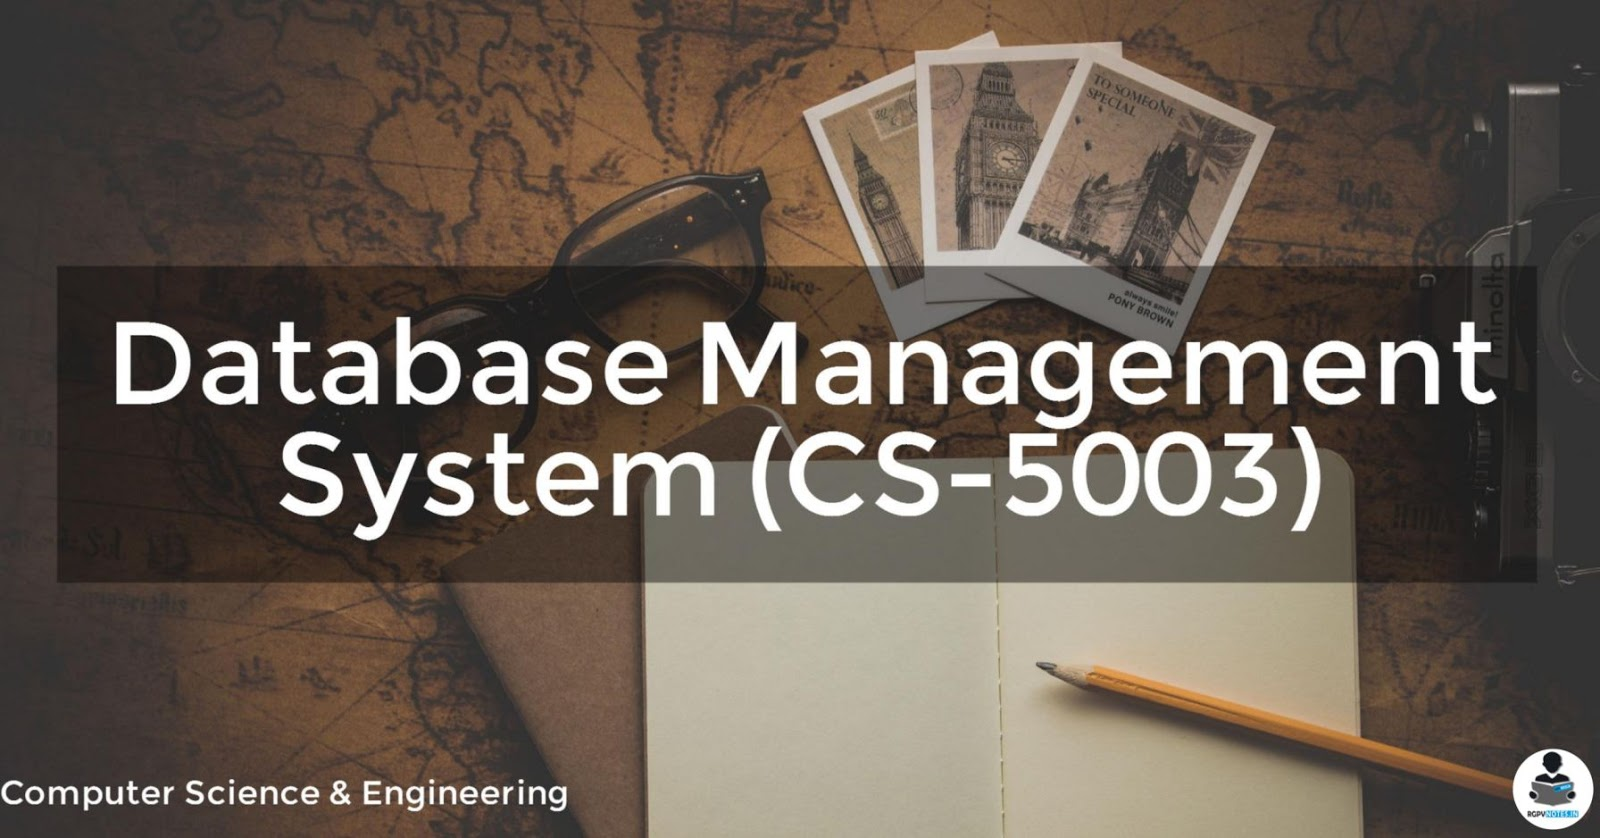 Database Management System (CS-5003)